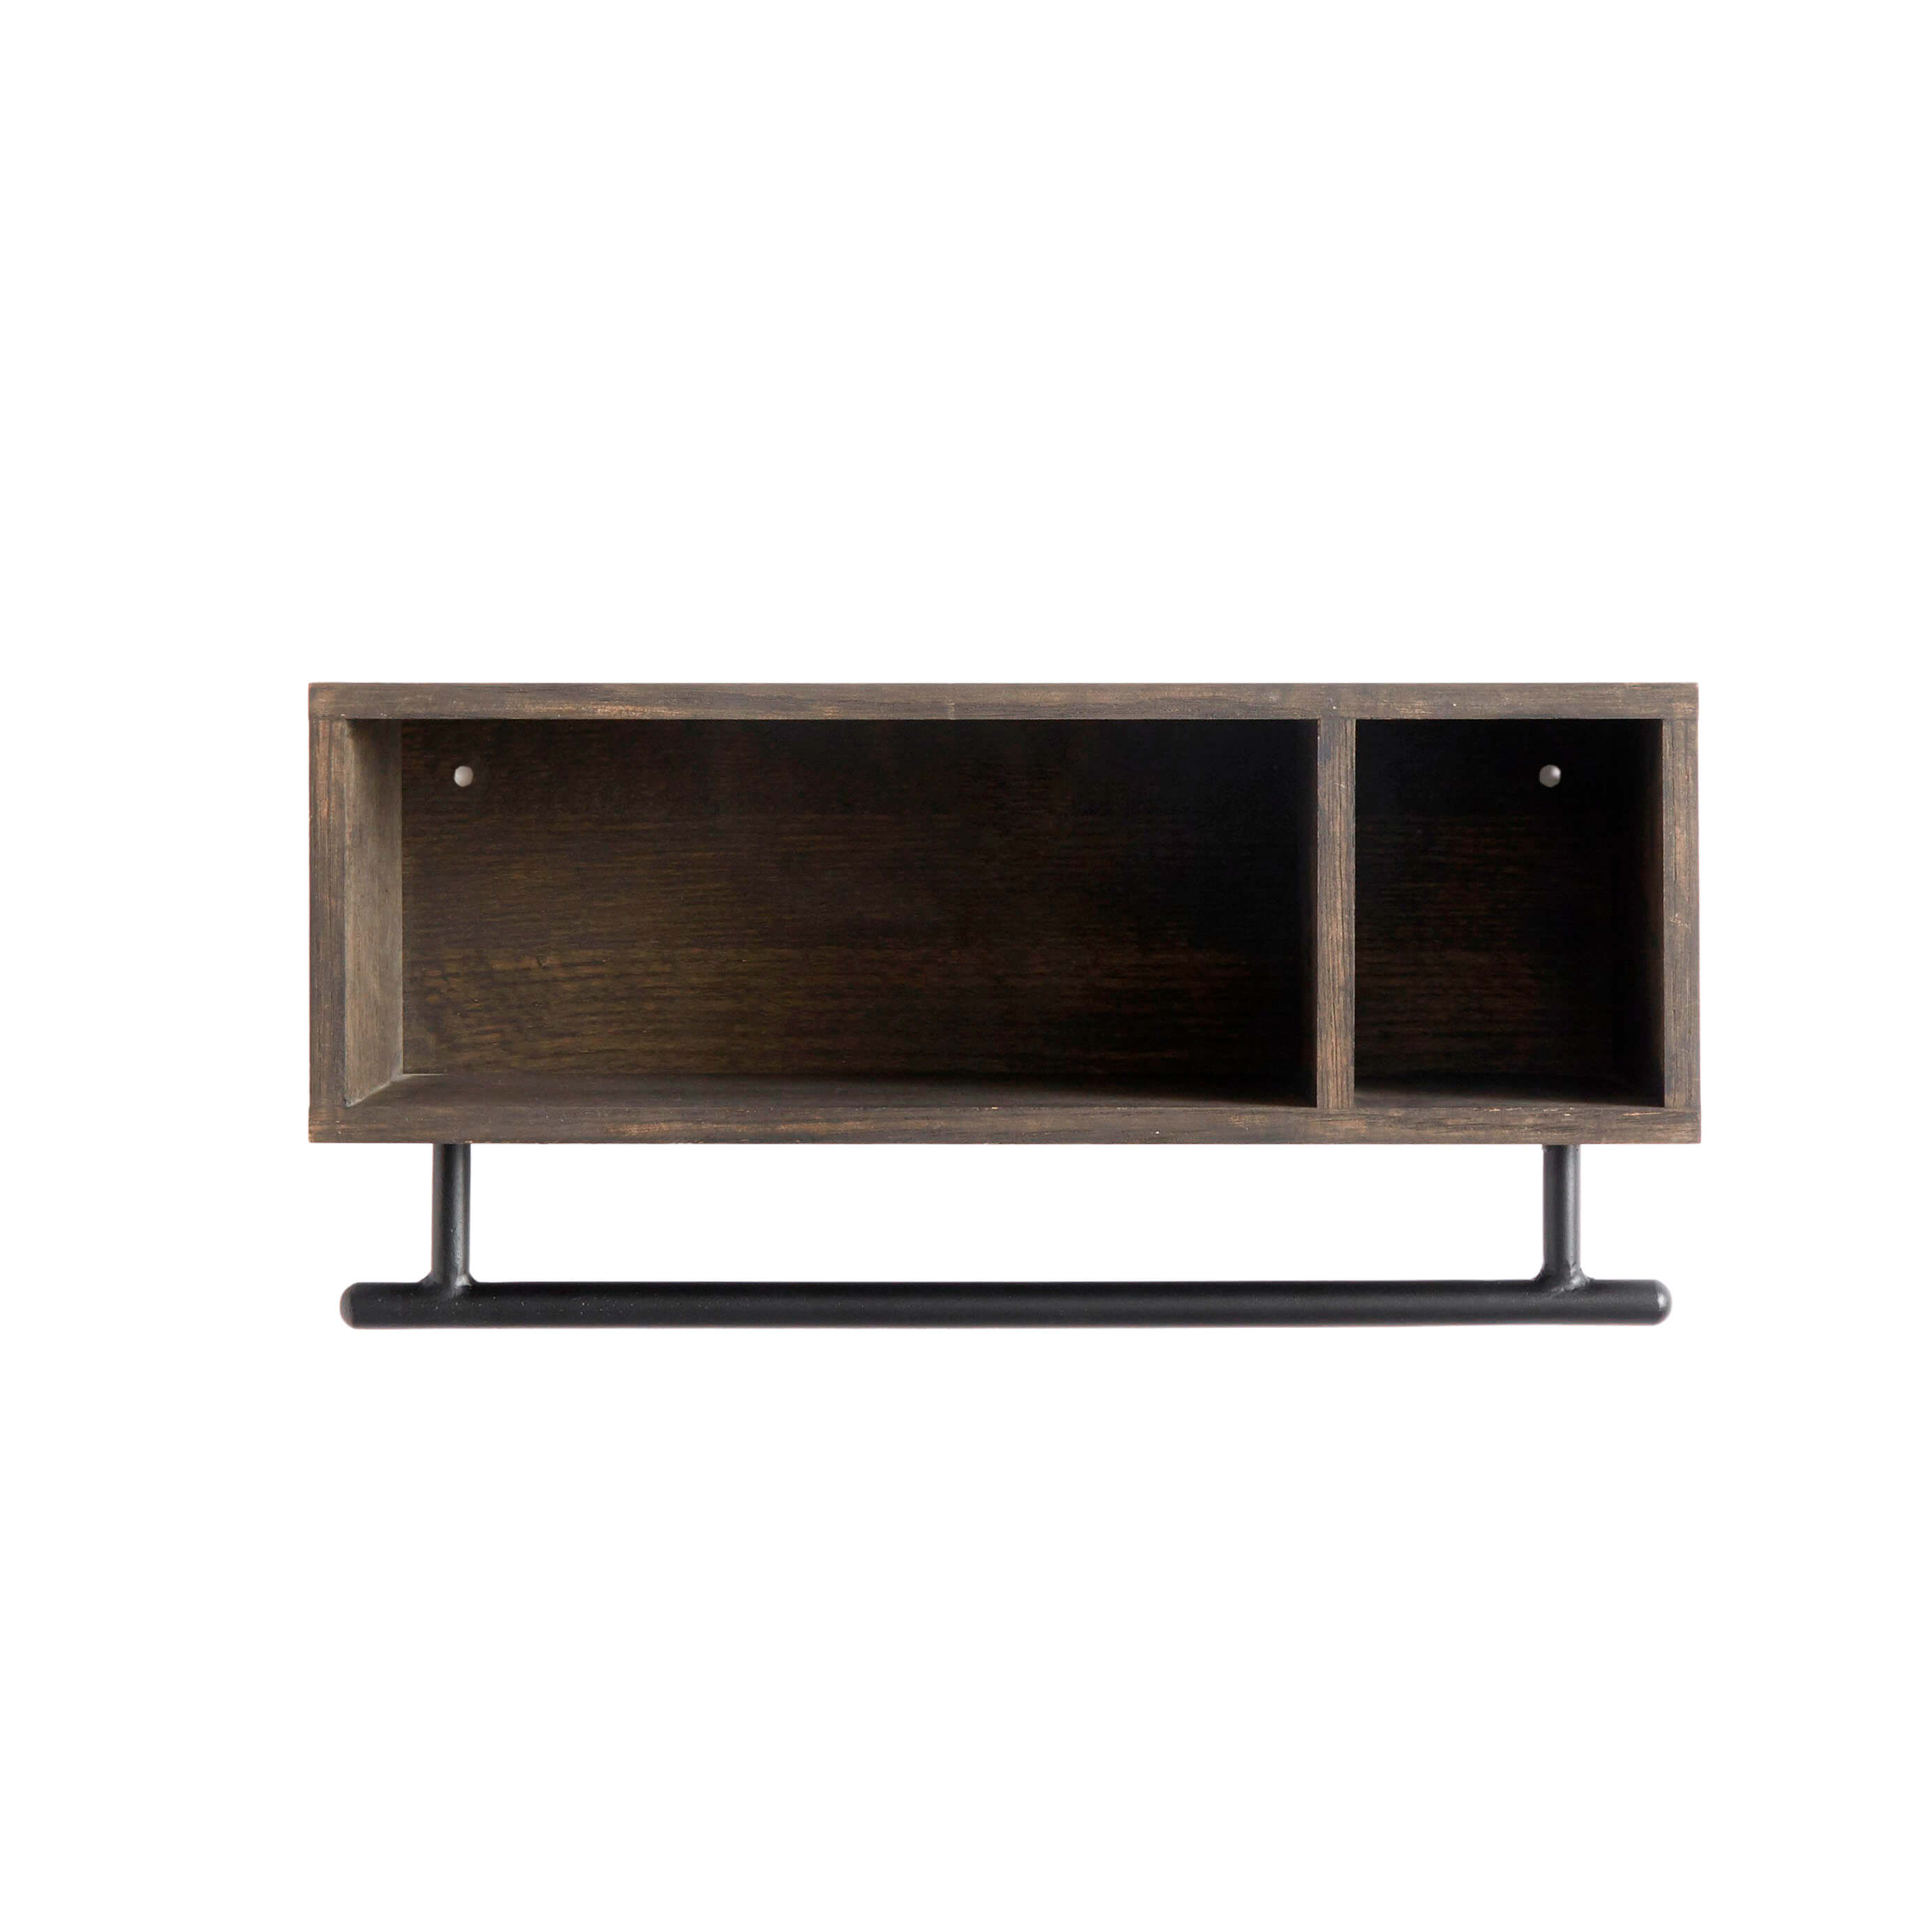 Muubs - Chelsea Multi Shelf Small - Brown (9010000051)